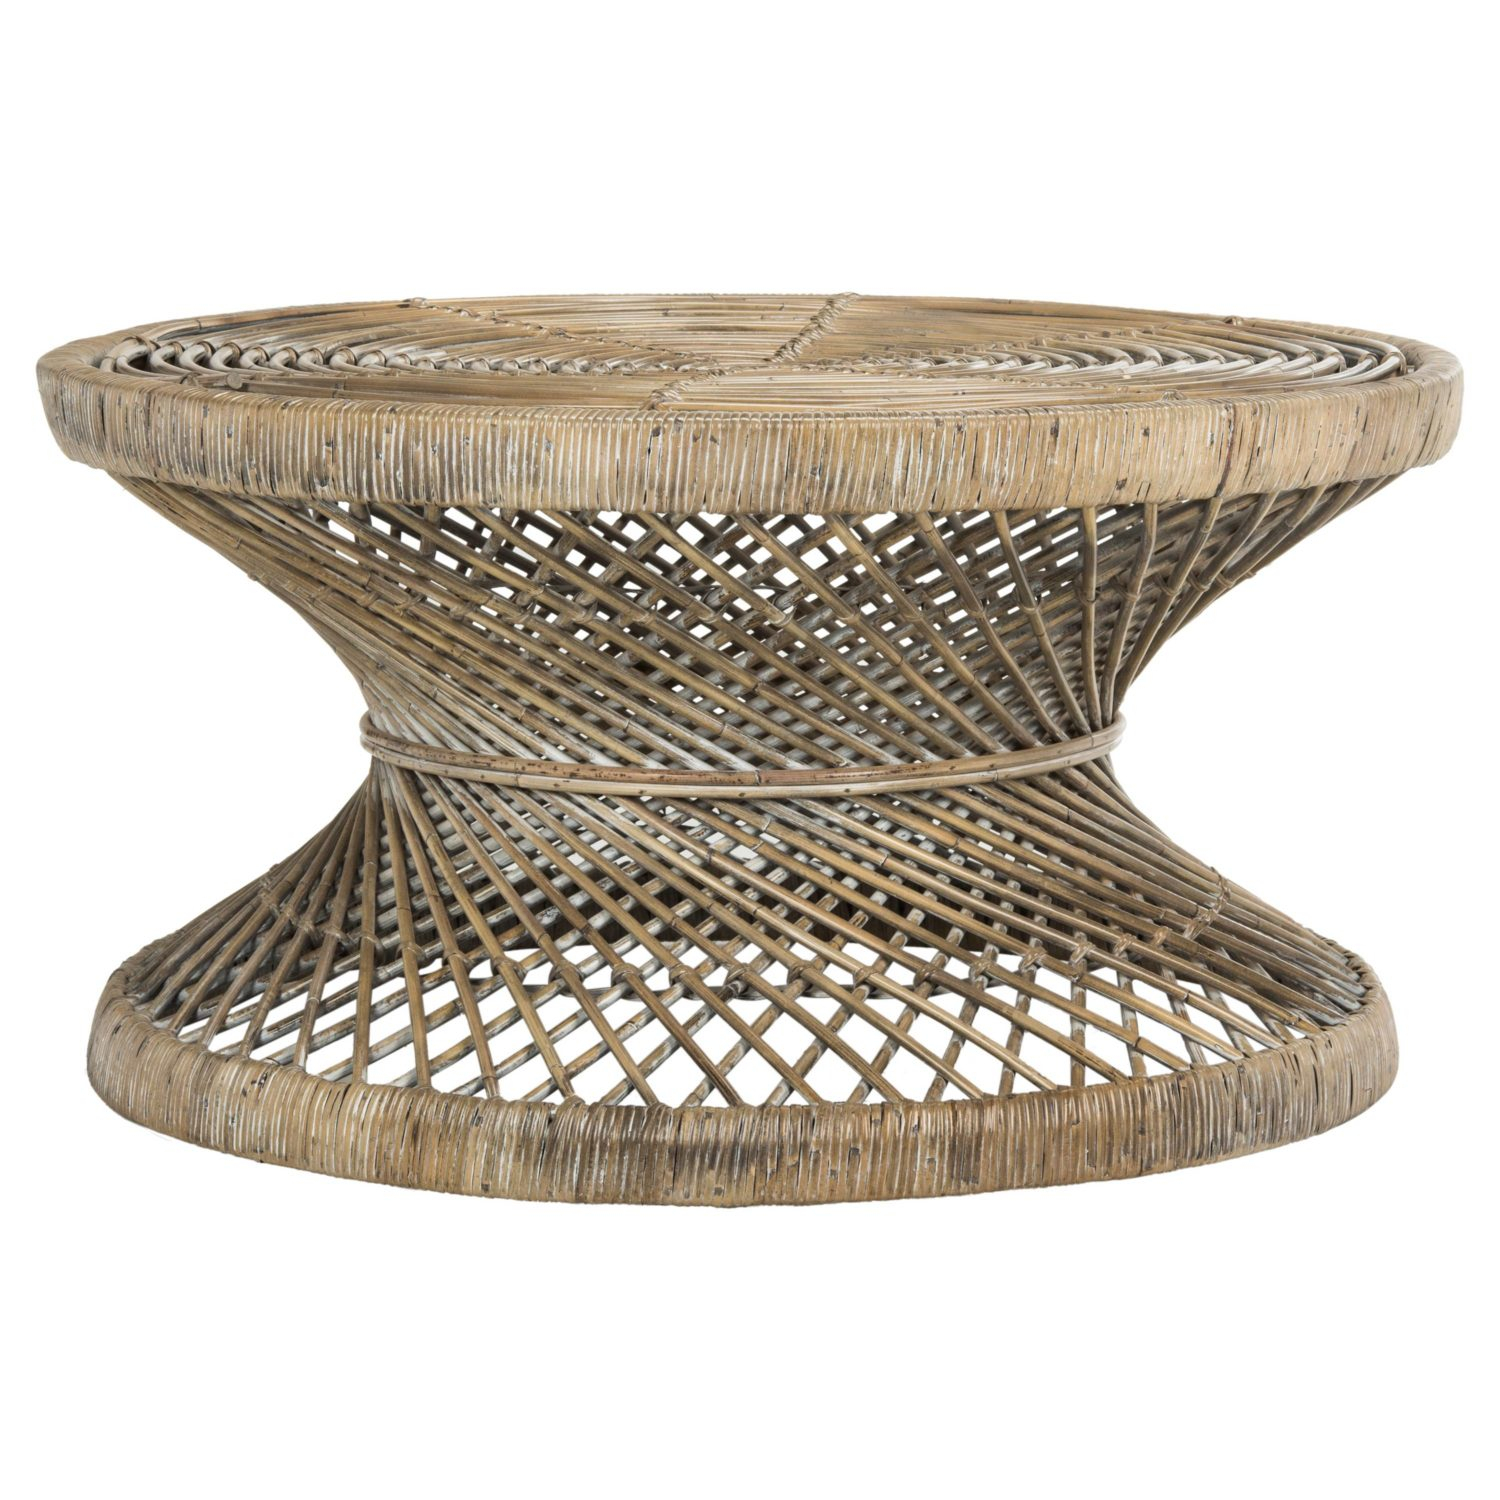 Rattan Round Coffee Table Eclectic Goods Eclectic Goods with sizing 1500 X 1500